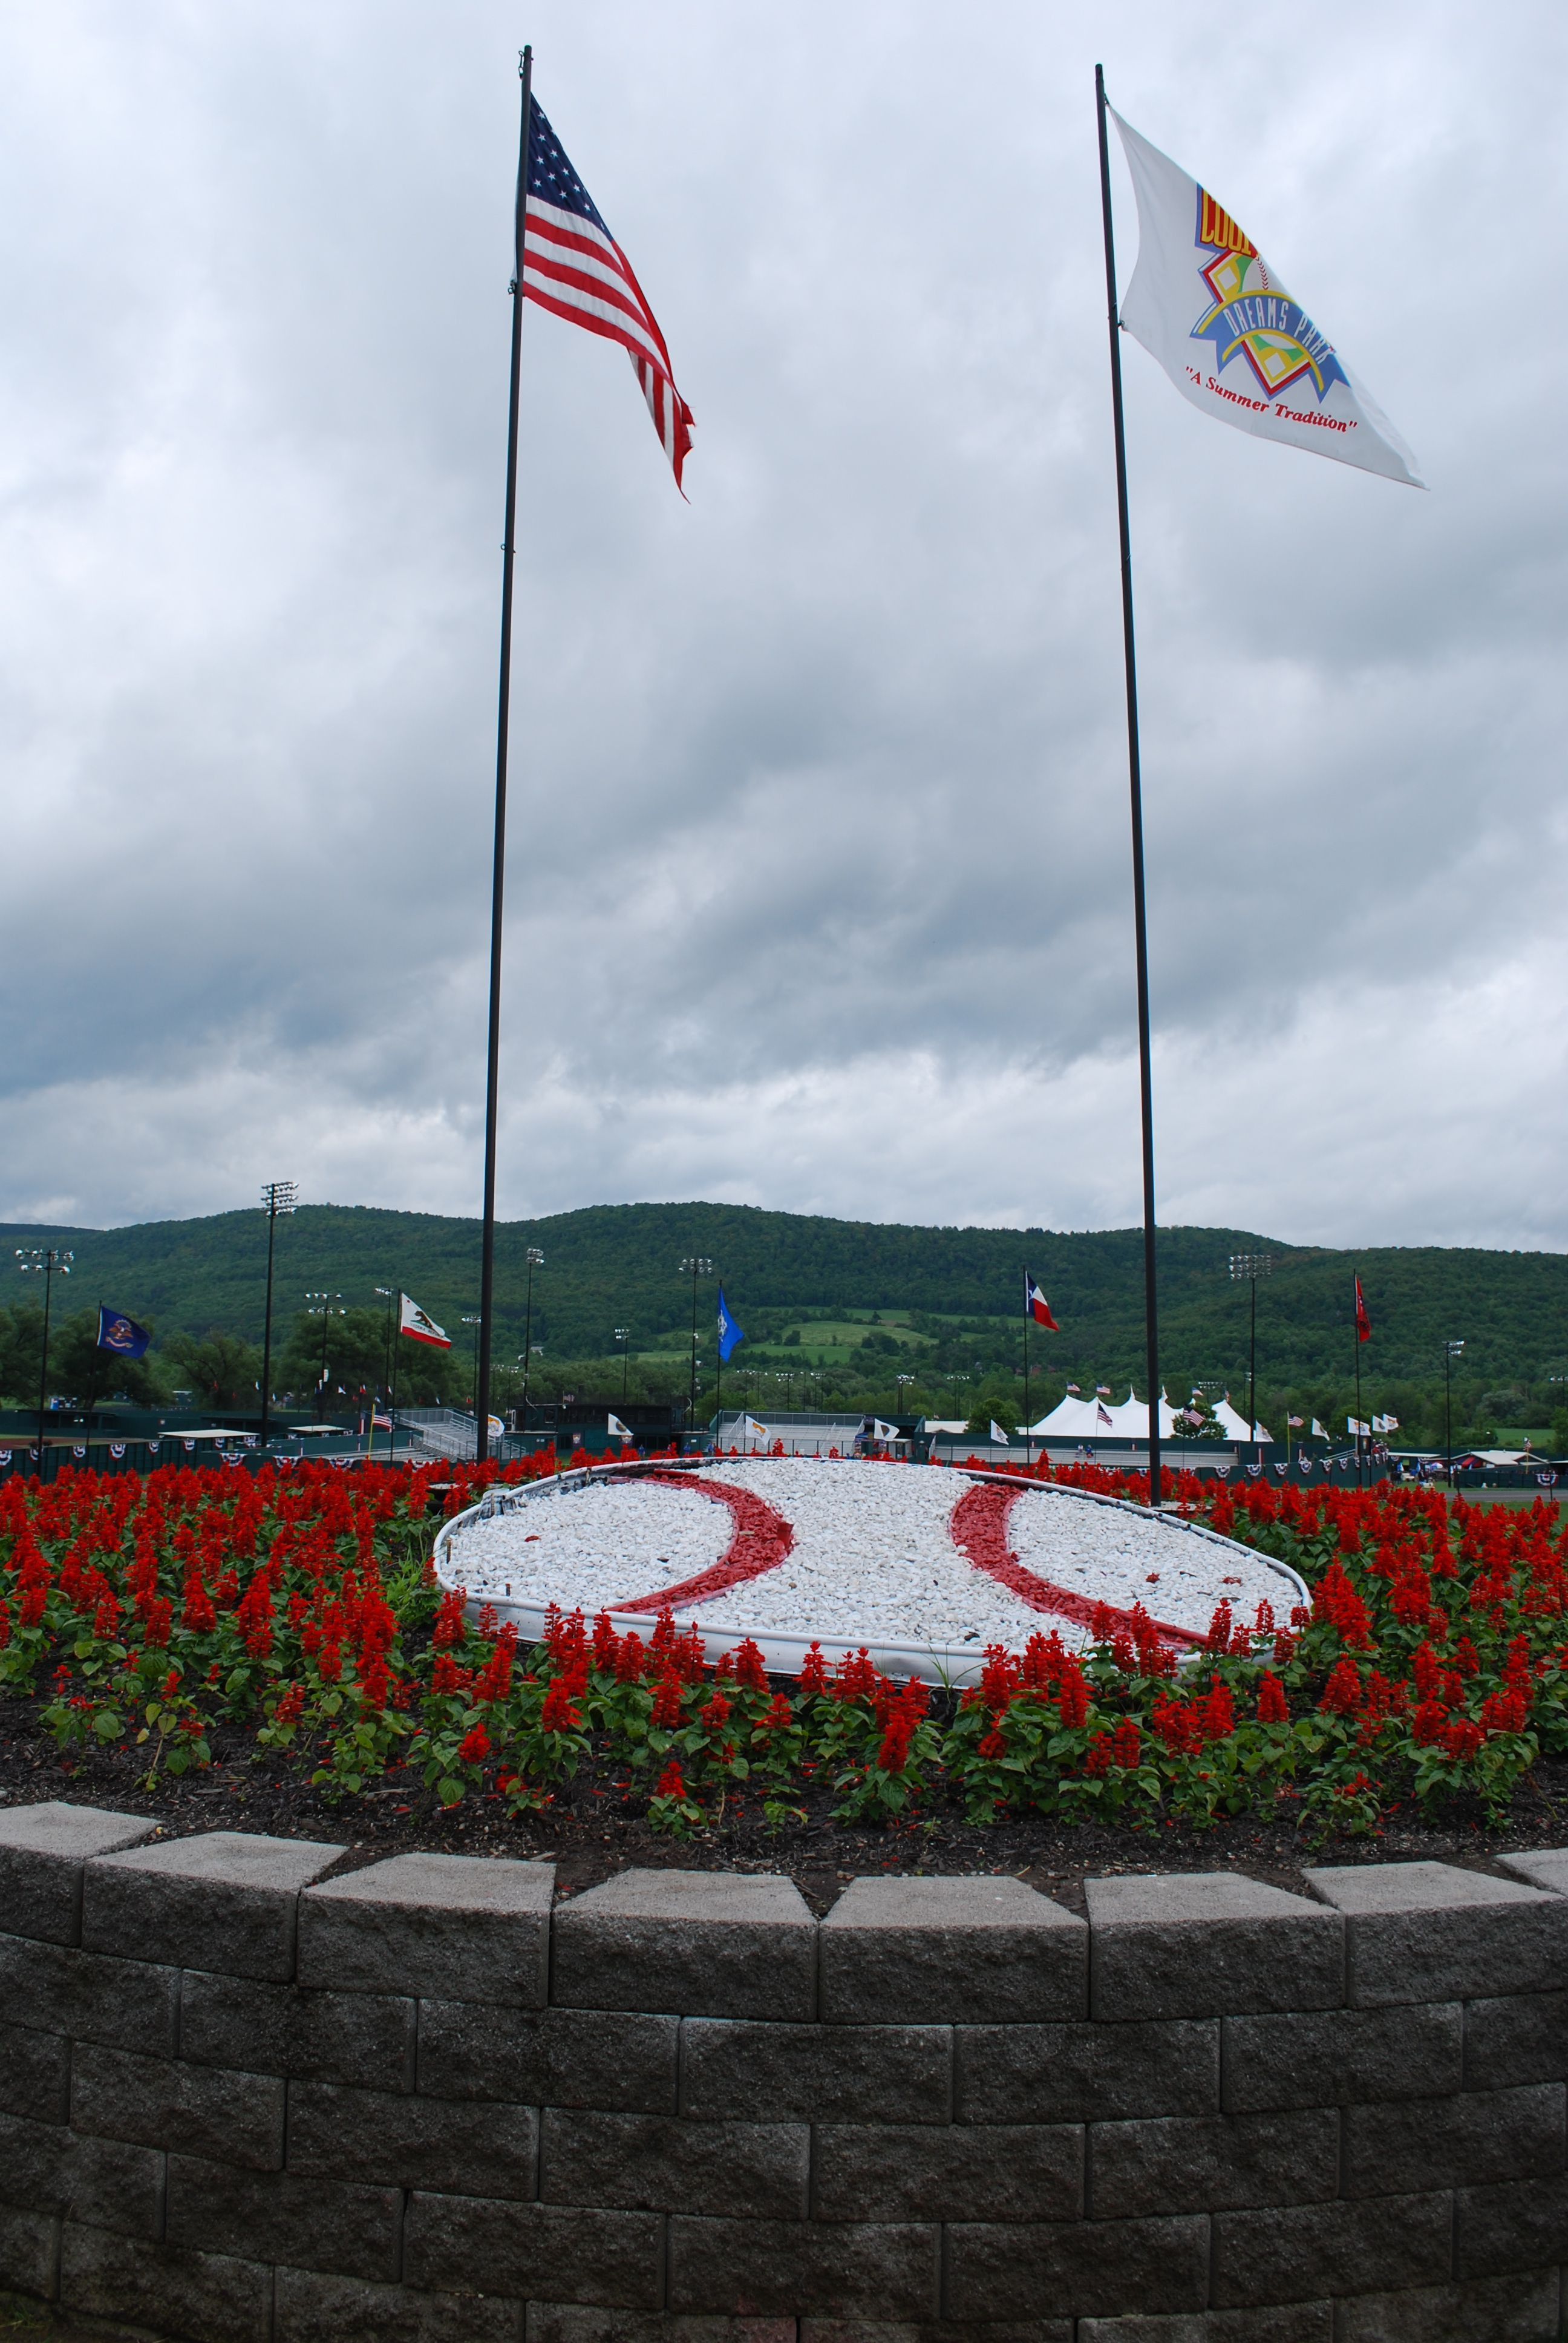 Cooperstown Home Of The Baseball Hall Of Fame My Son Played Ball Here Cooperstown Dreams Park Cooperstown Baseball History